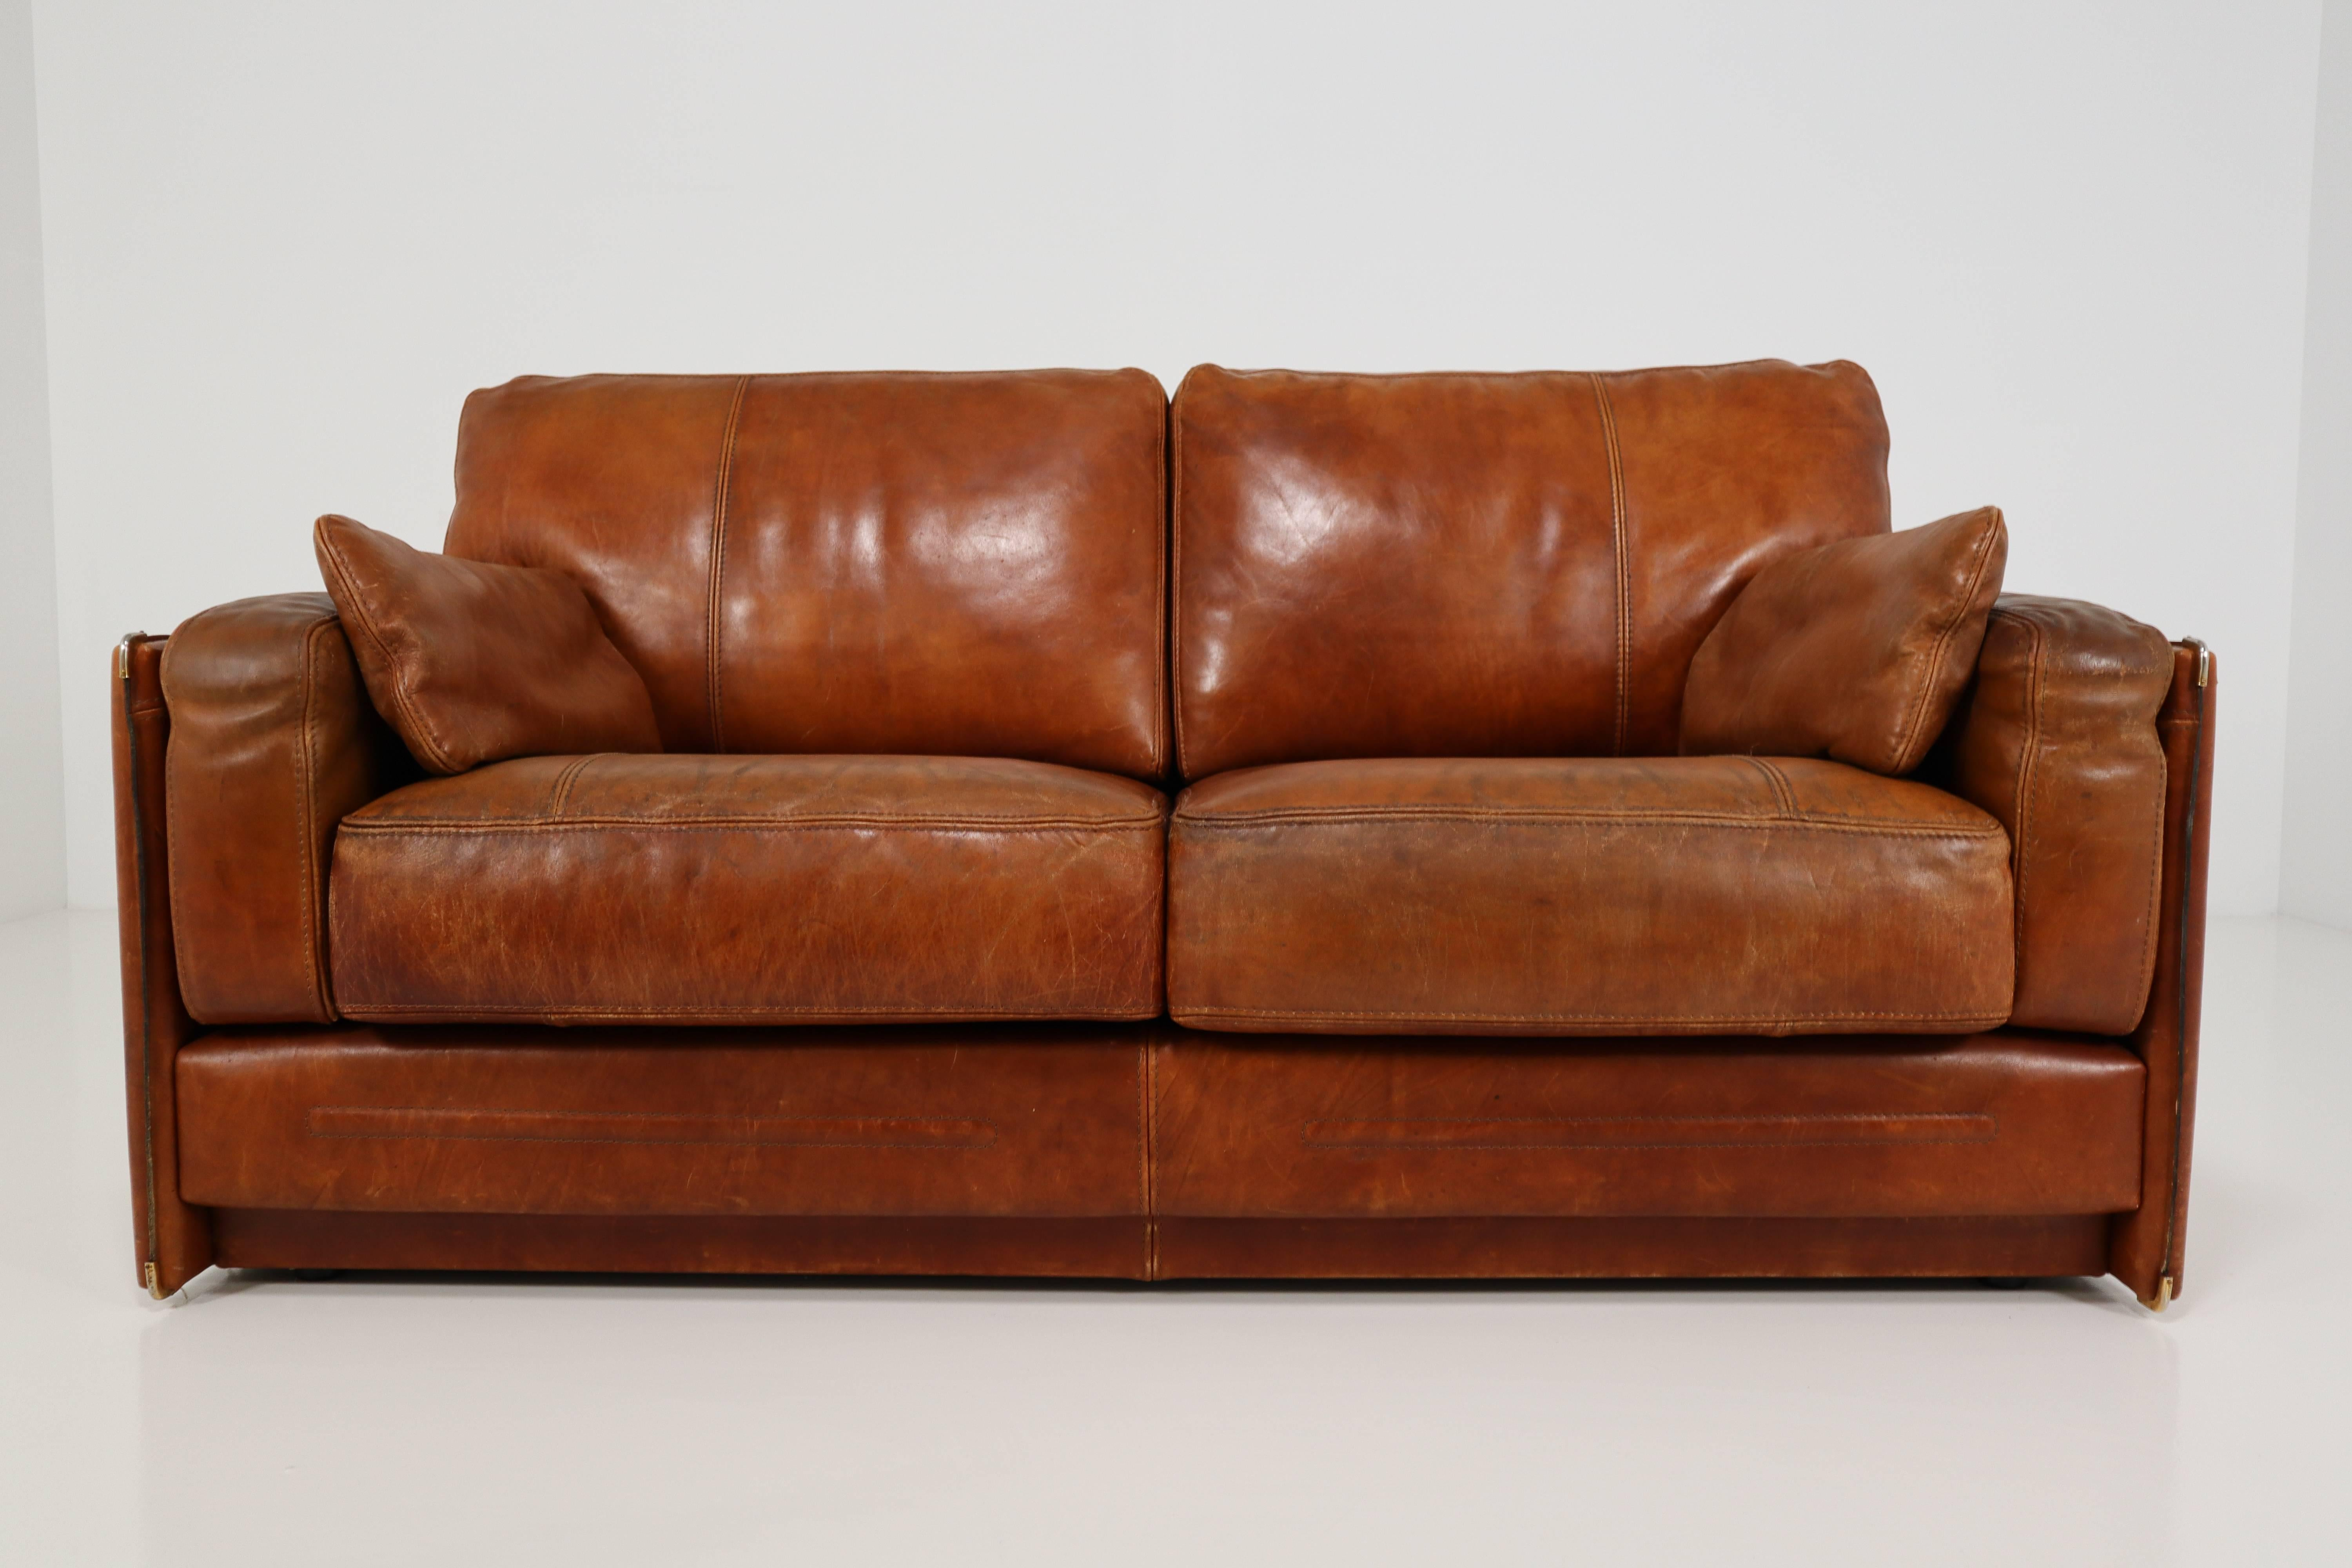 An Italian Baxter Bull Leather Sofa From High Quality. The Sofa Contains An Solid  Wood